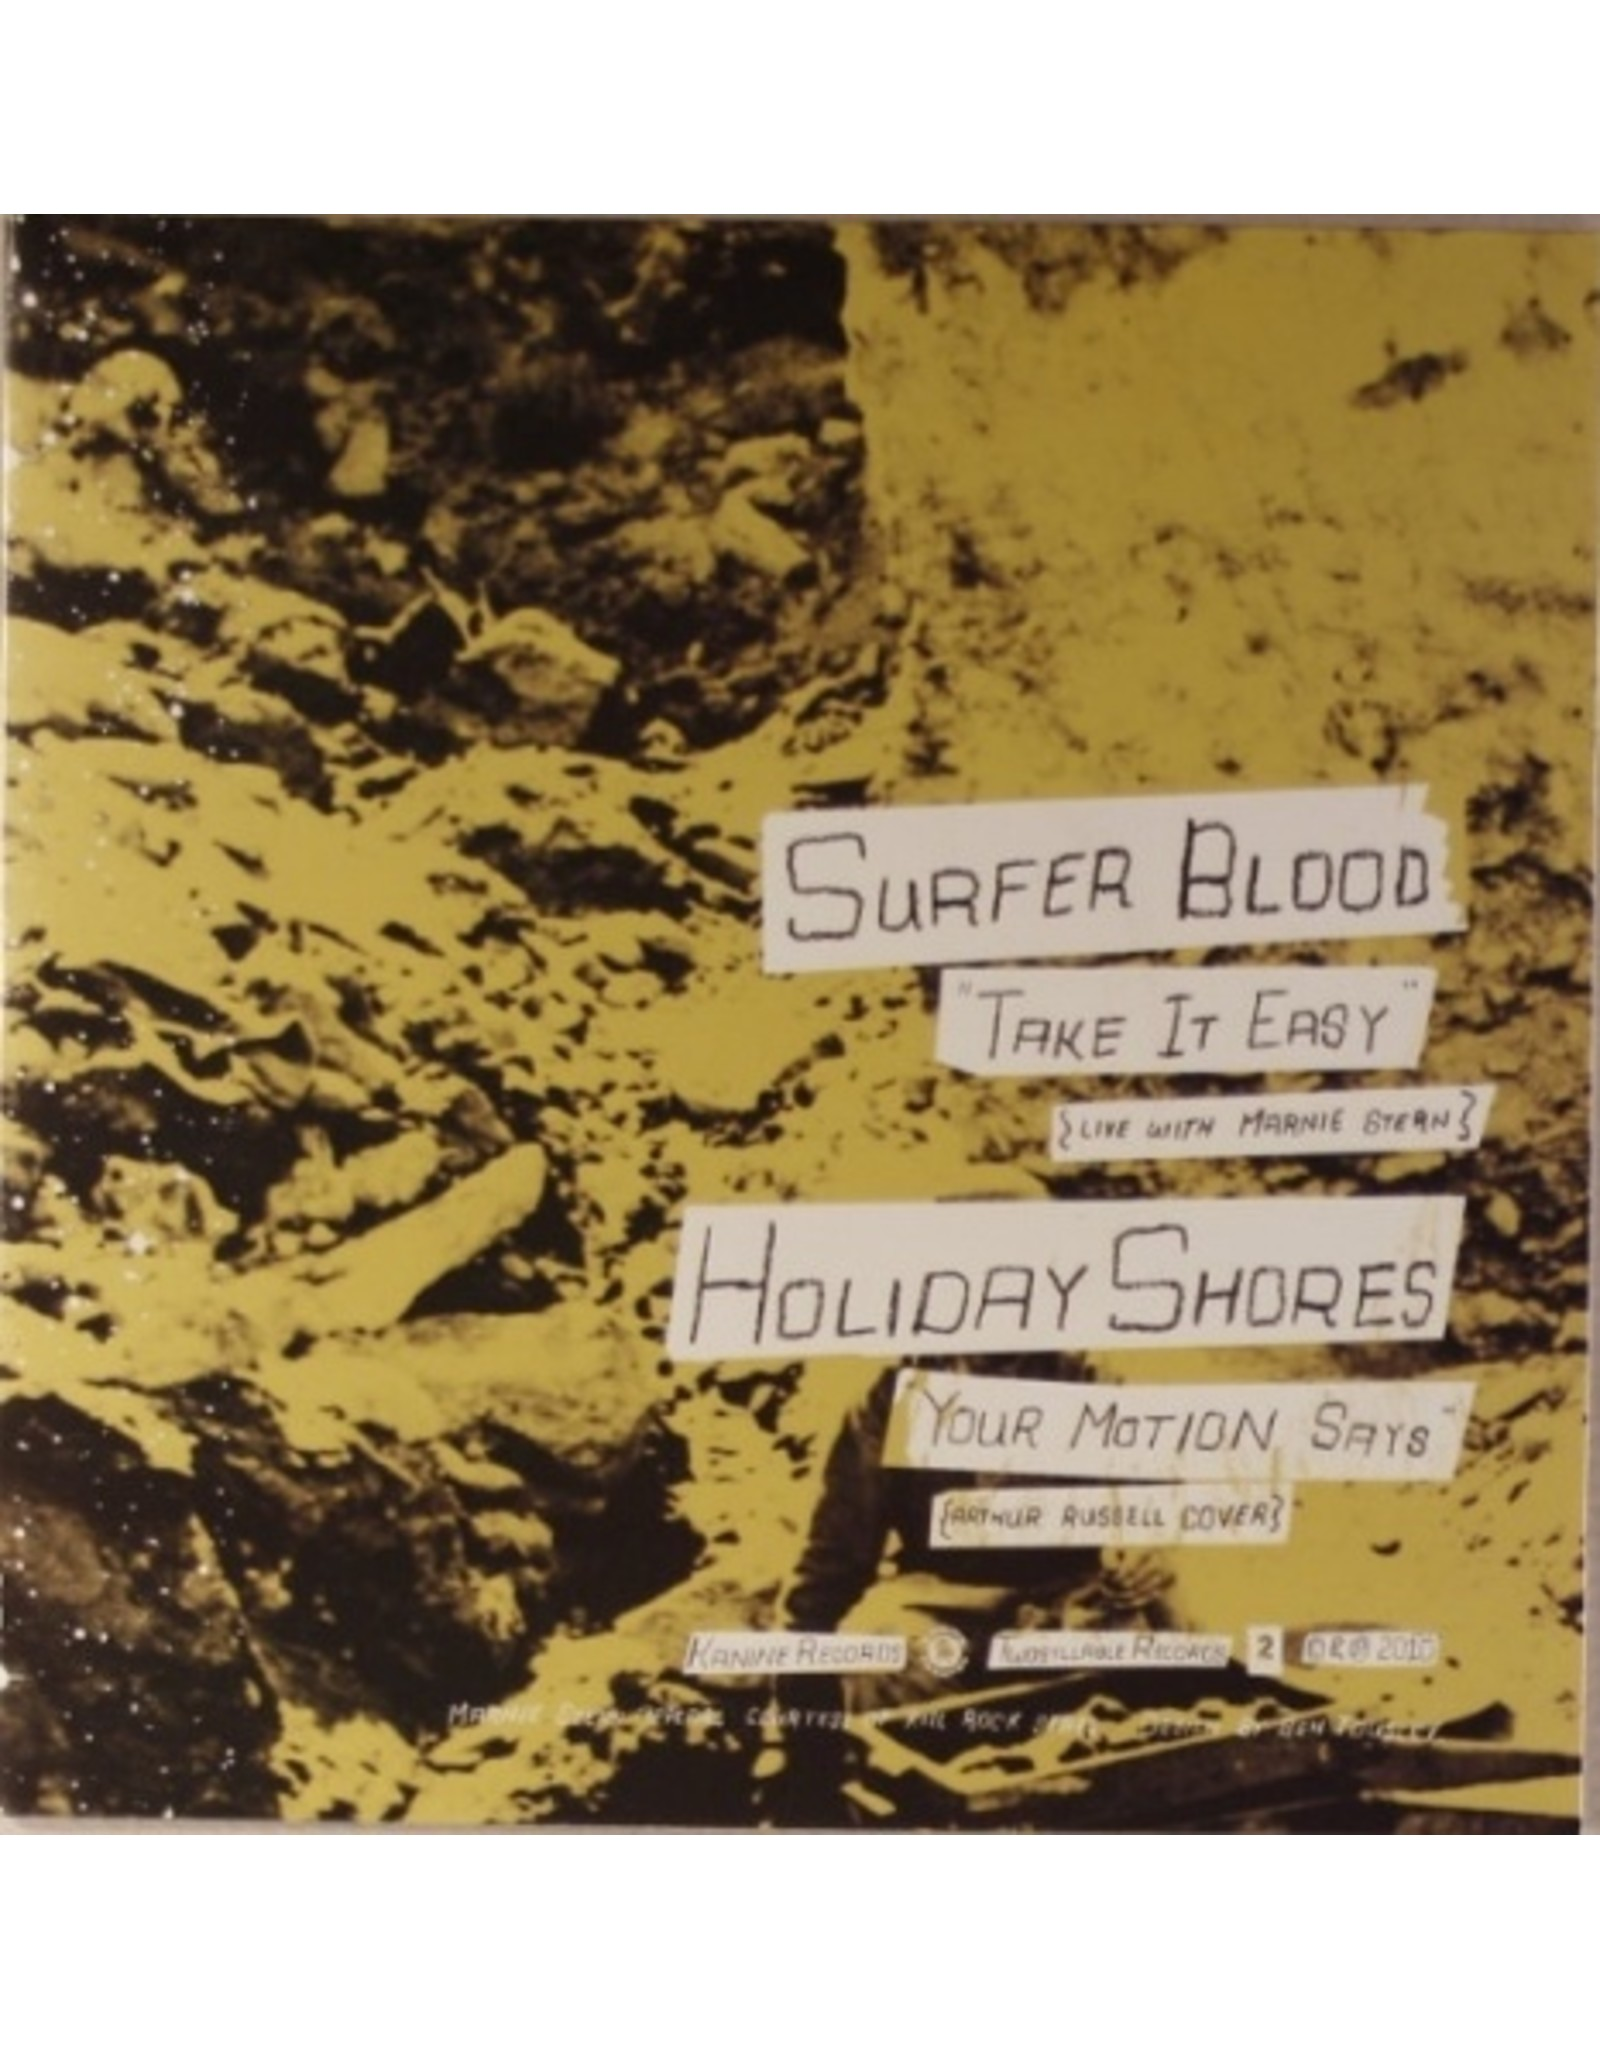 New Vinyl Surfer Blood/Holiday Shores - Split 7""